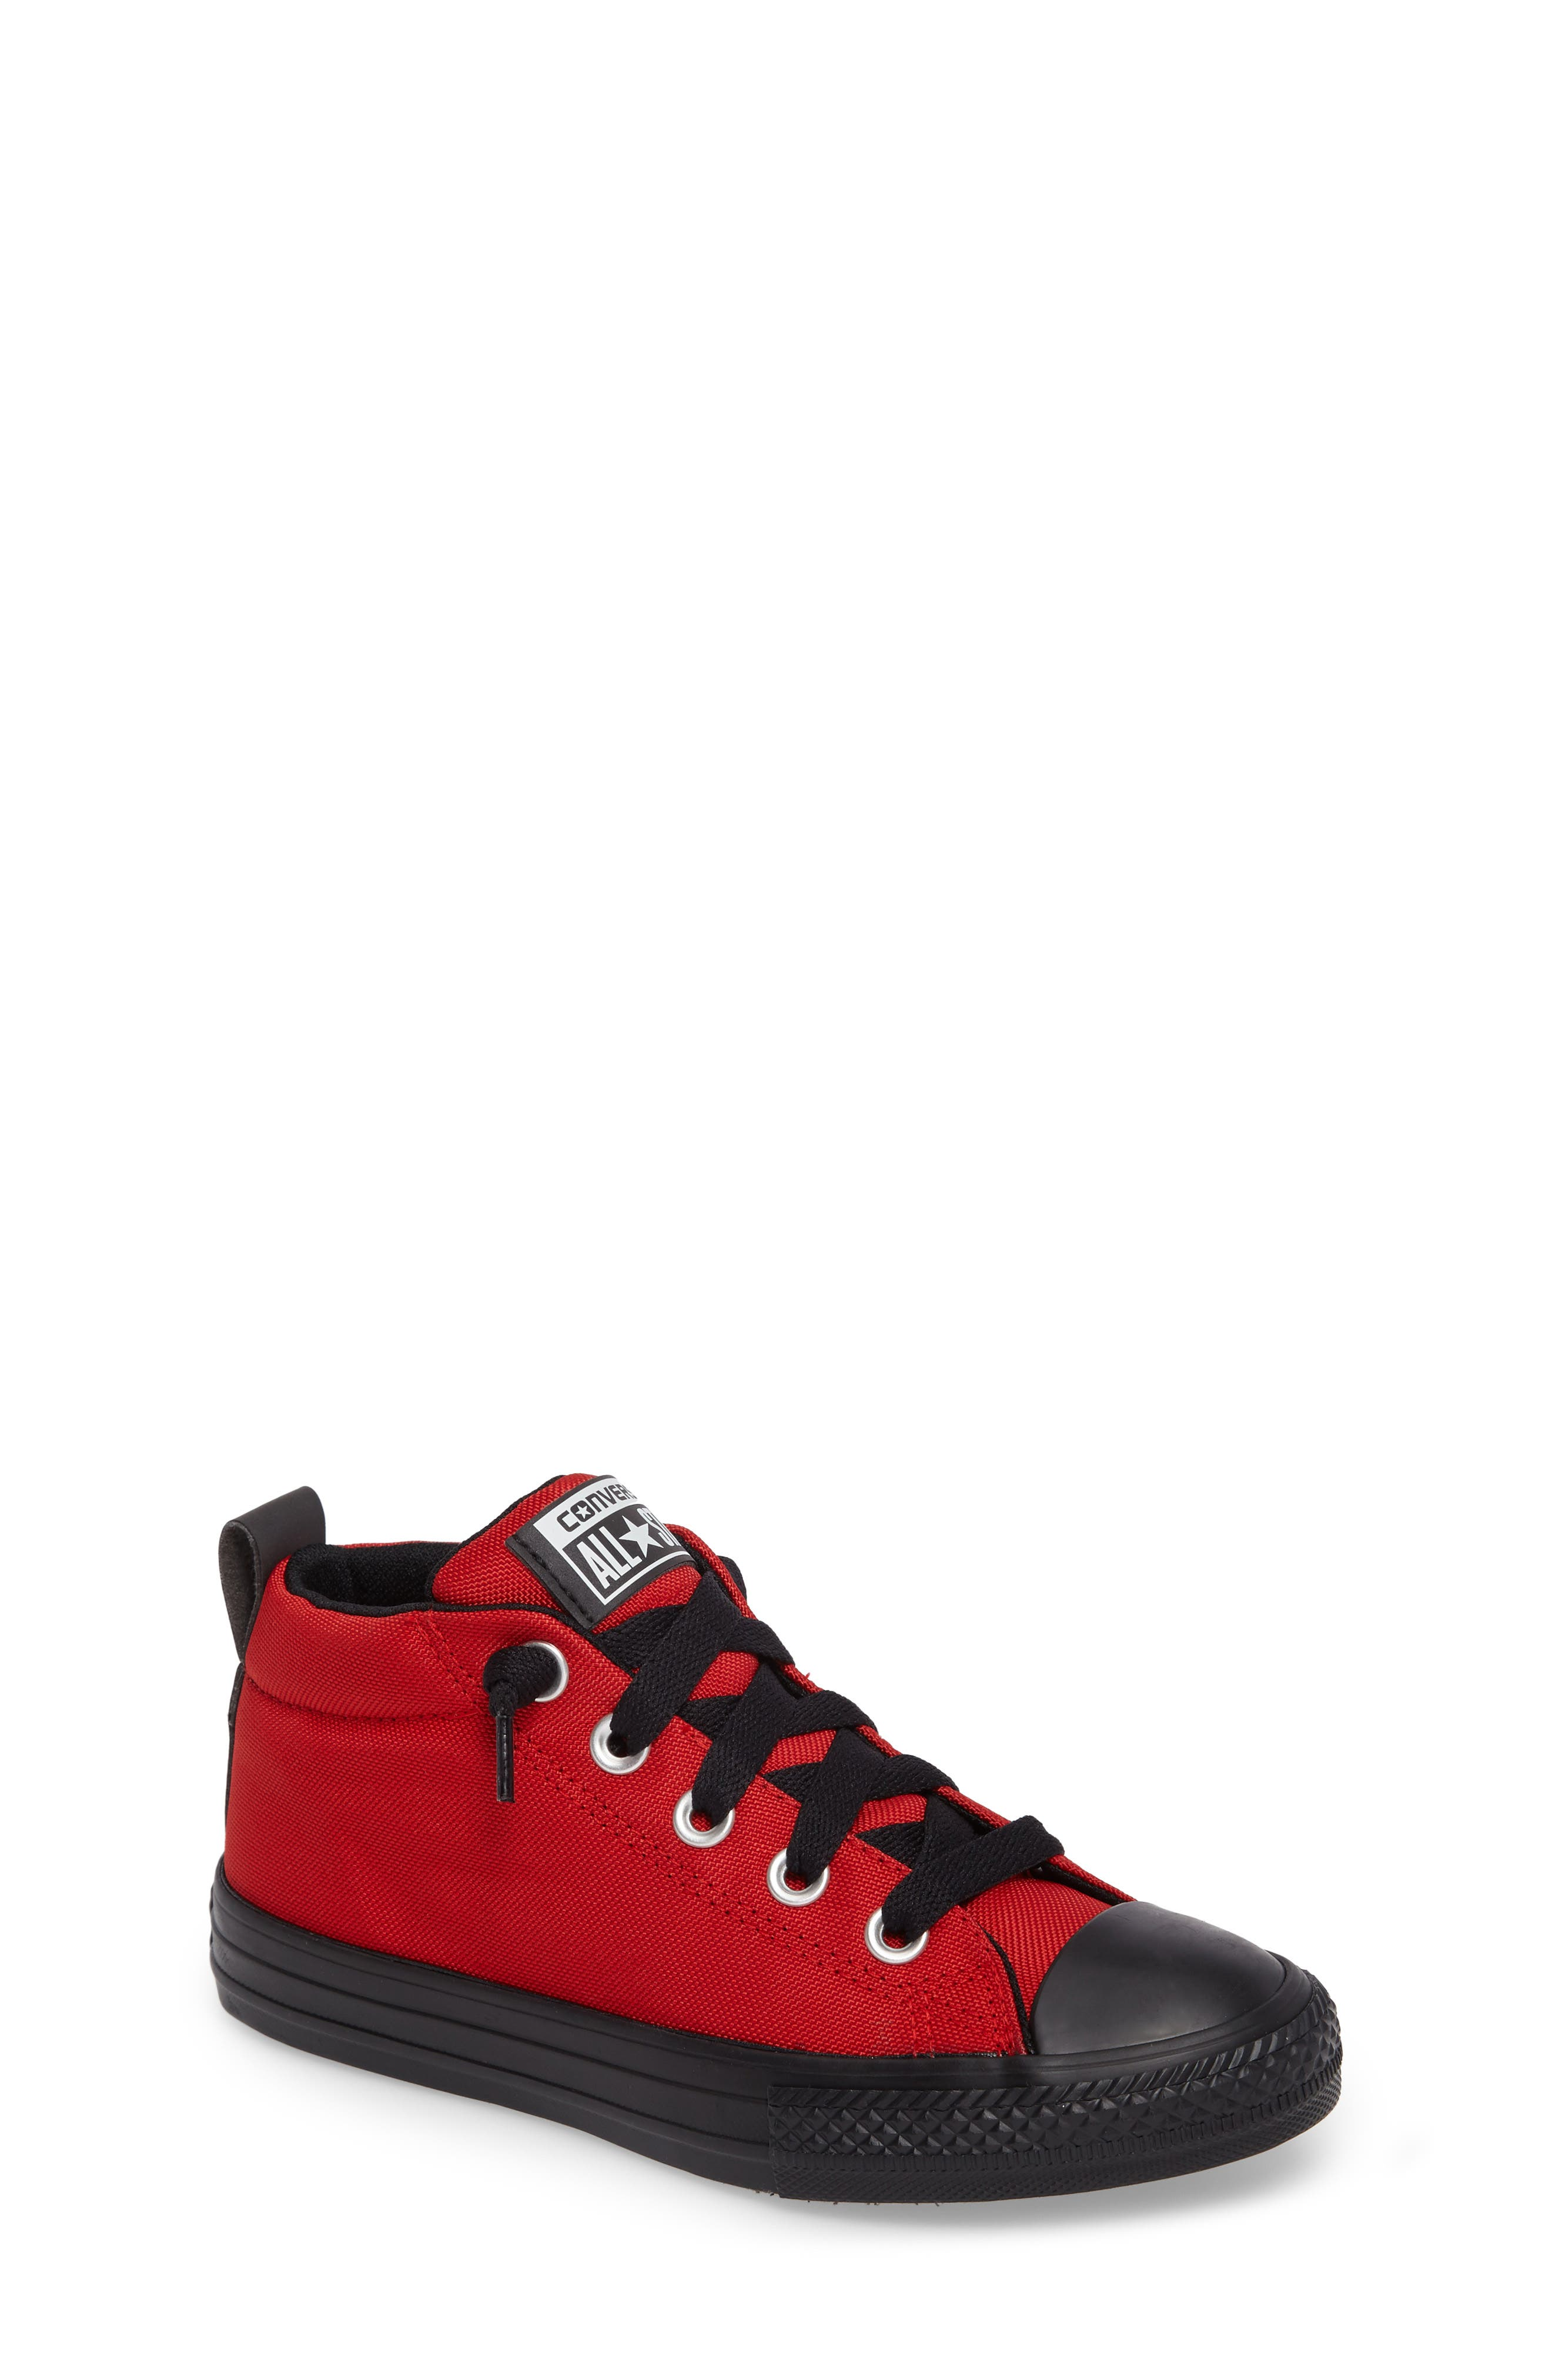 Main Image - Converse Chuck Taylor® All Star® Street Mid Top Sneaker (Baby, Walker, Toddler, Little Kid & Big Kid)